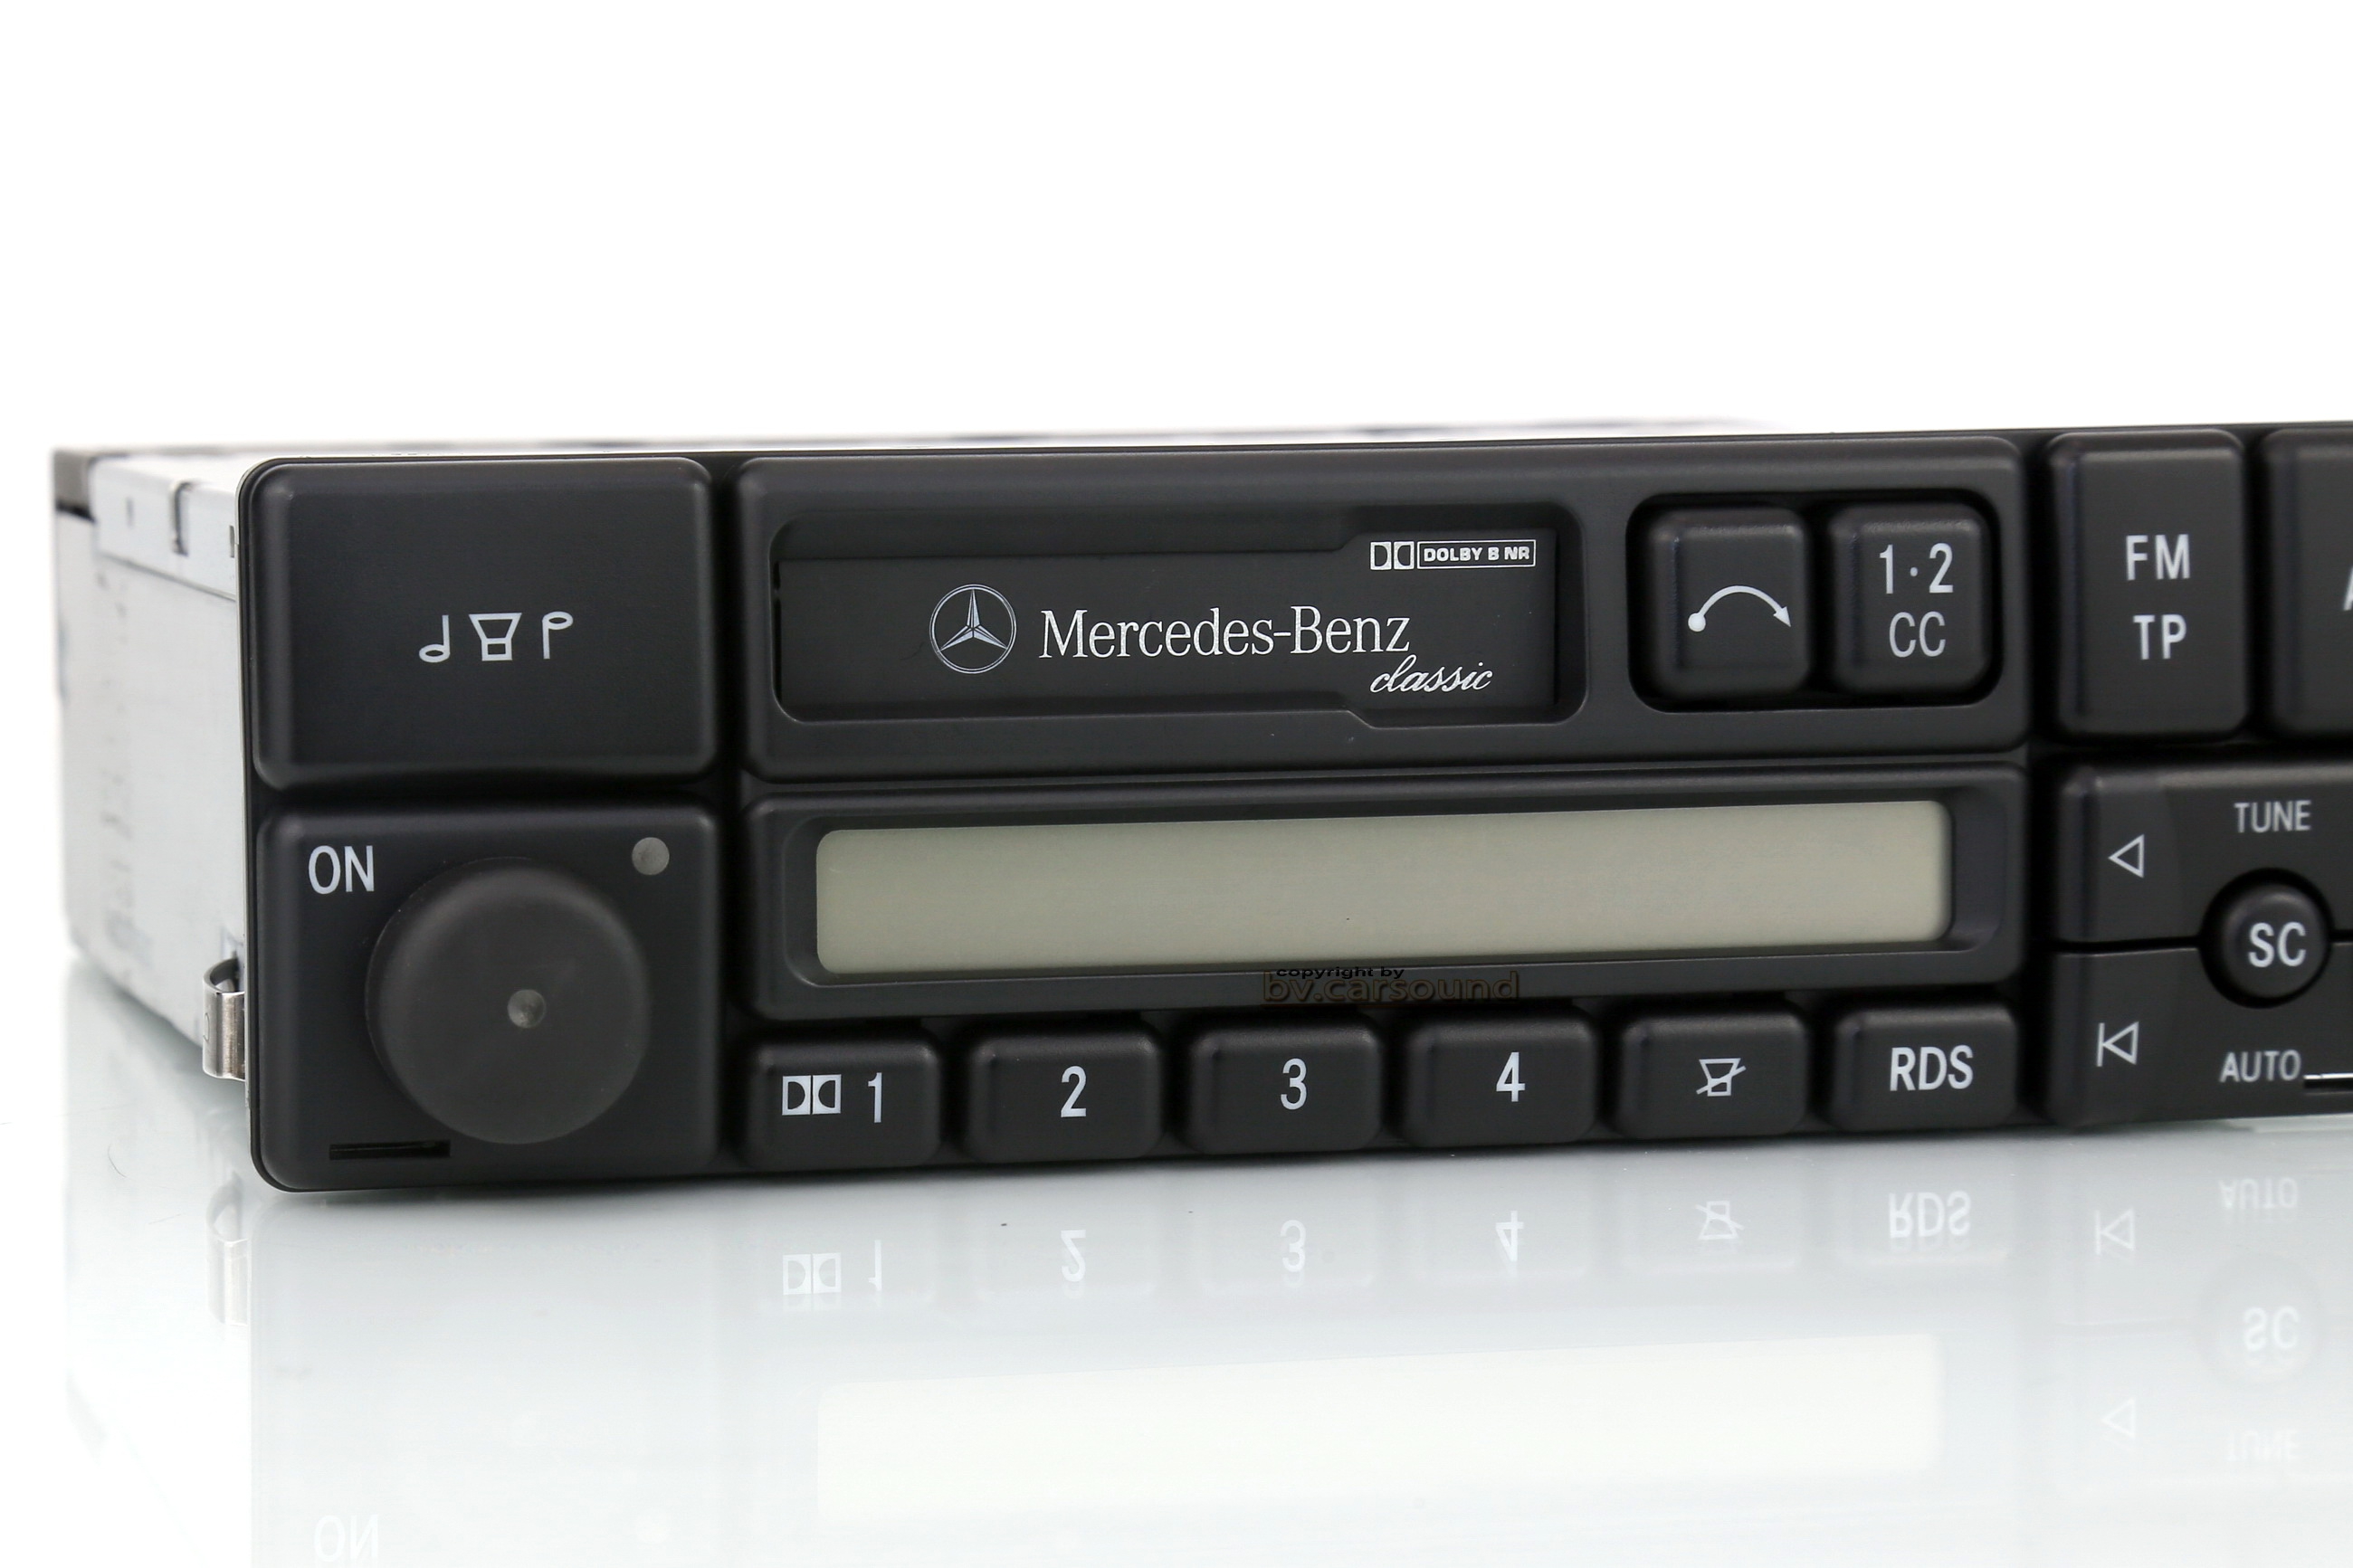 mercedes benz classic radio becker be1150 mit aux. Black Bedroom Furniture Sets. Home Design Ideas